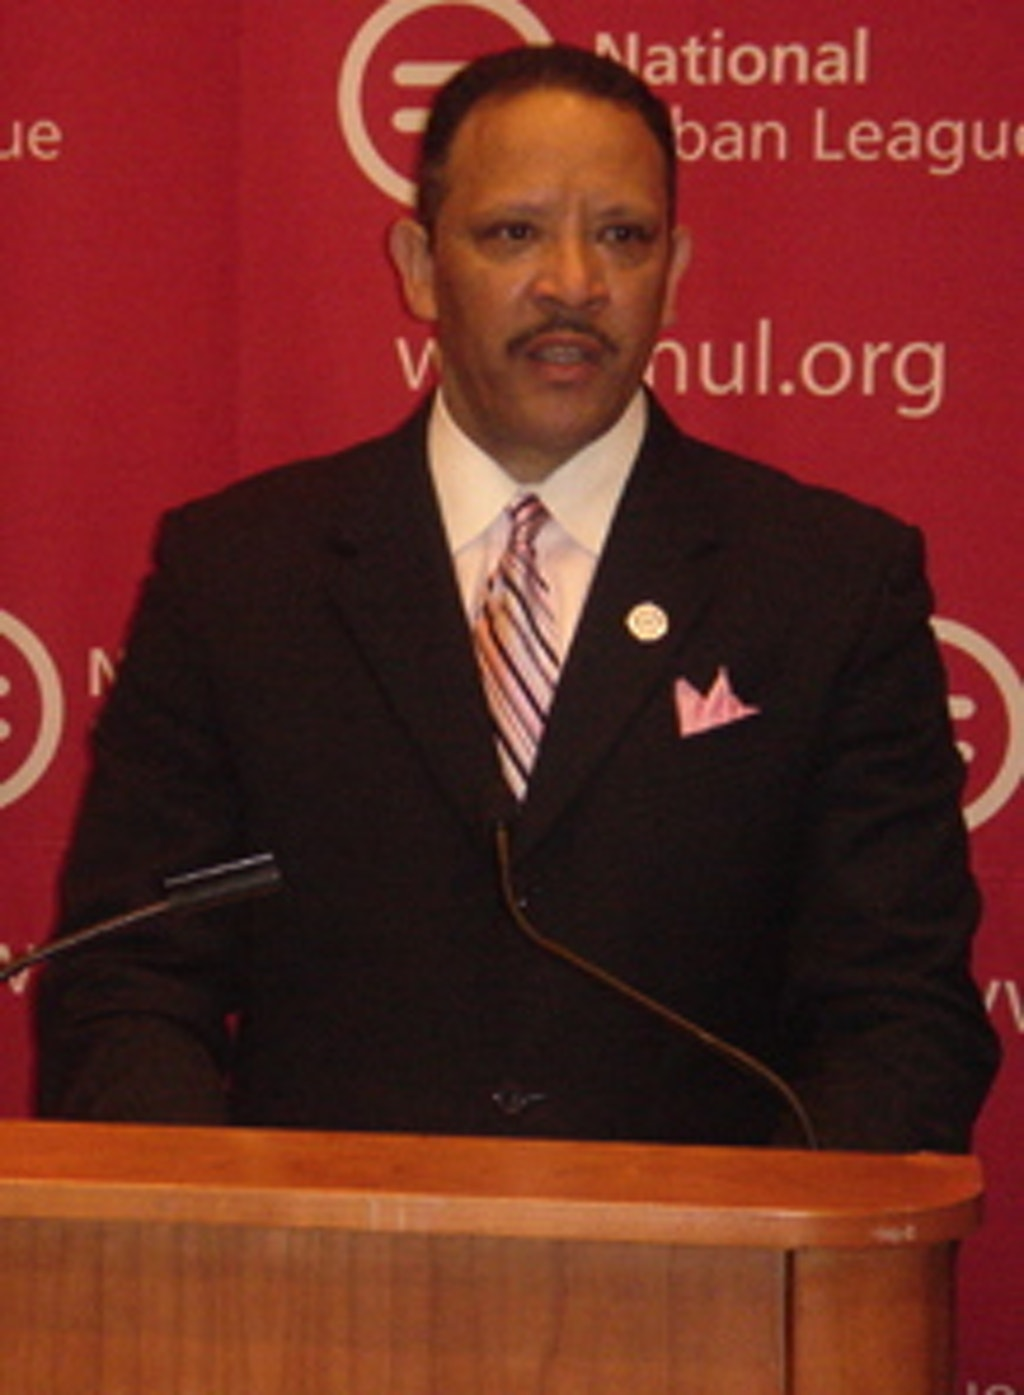 Urban League President Calls for Reconsideration of Death Penalty